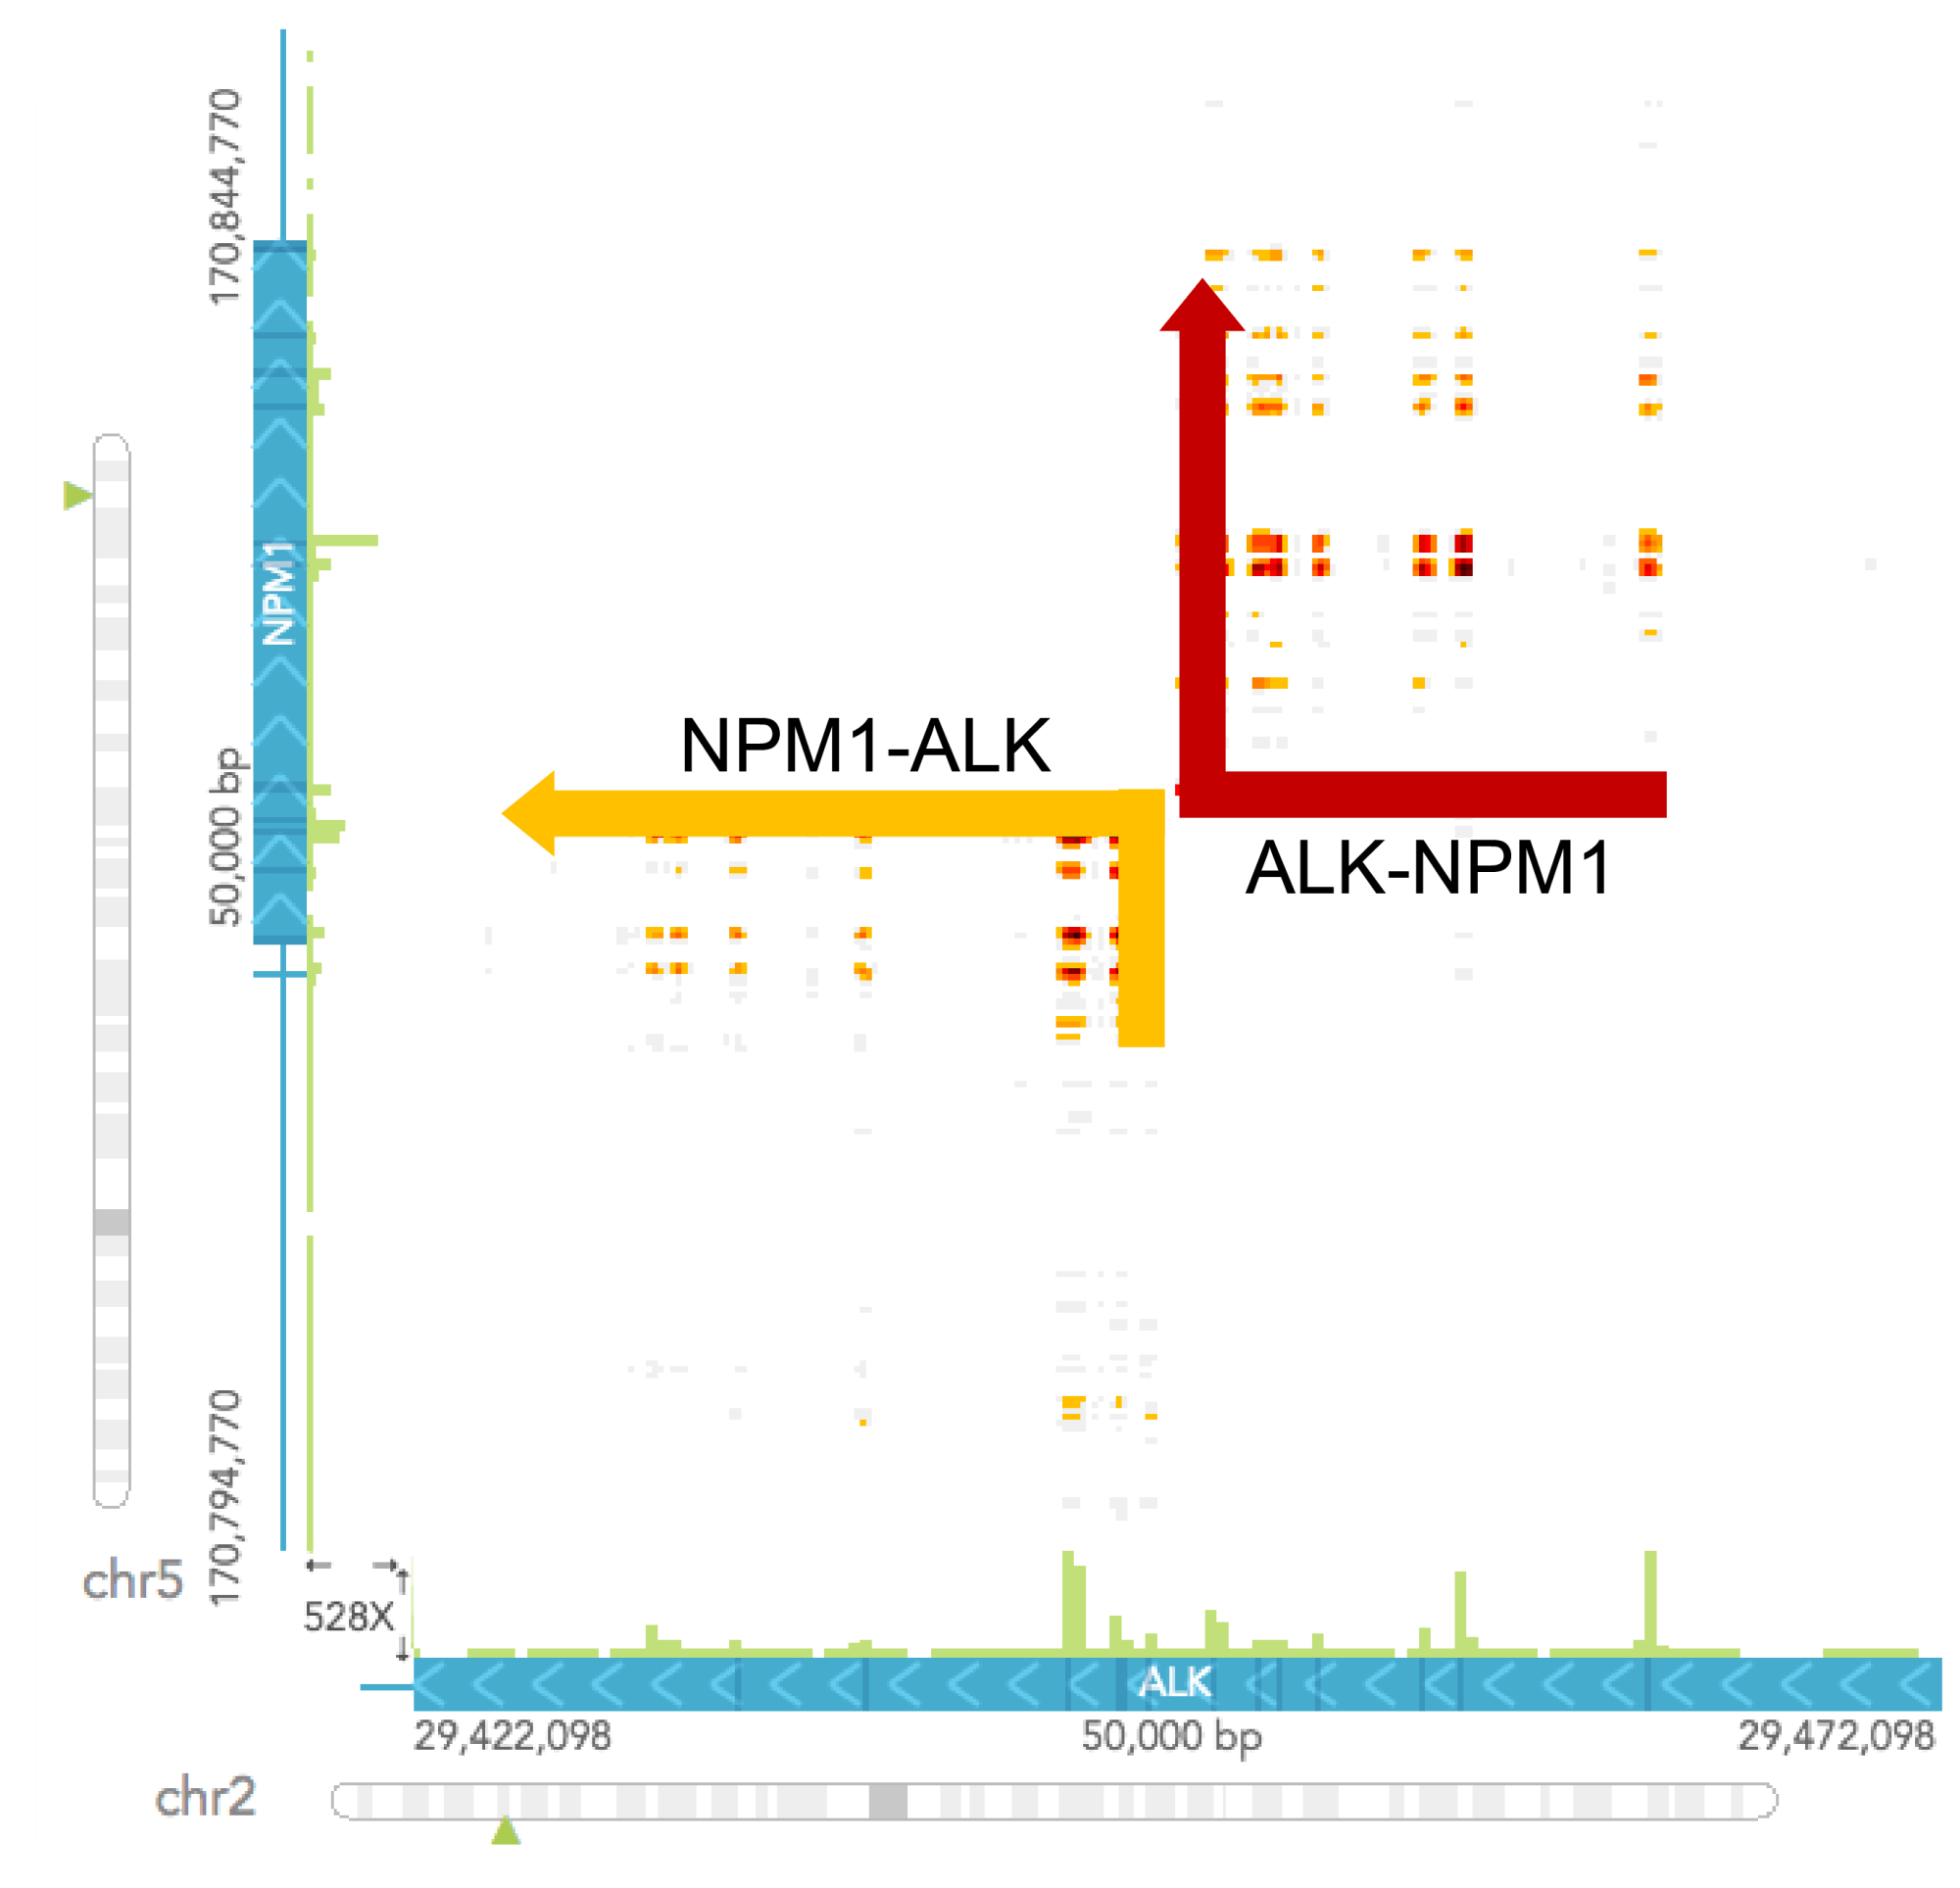 hight resolution of to determine the chromosomal rearrangement it is easiest to draw out a schematic of the wild type gene organization based on the haplotypes view and the